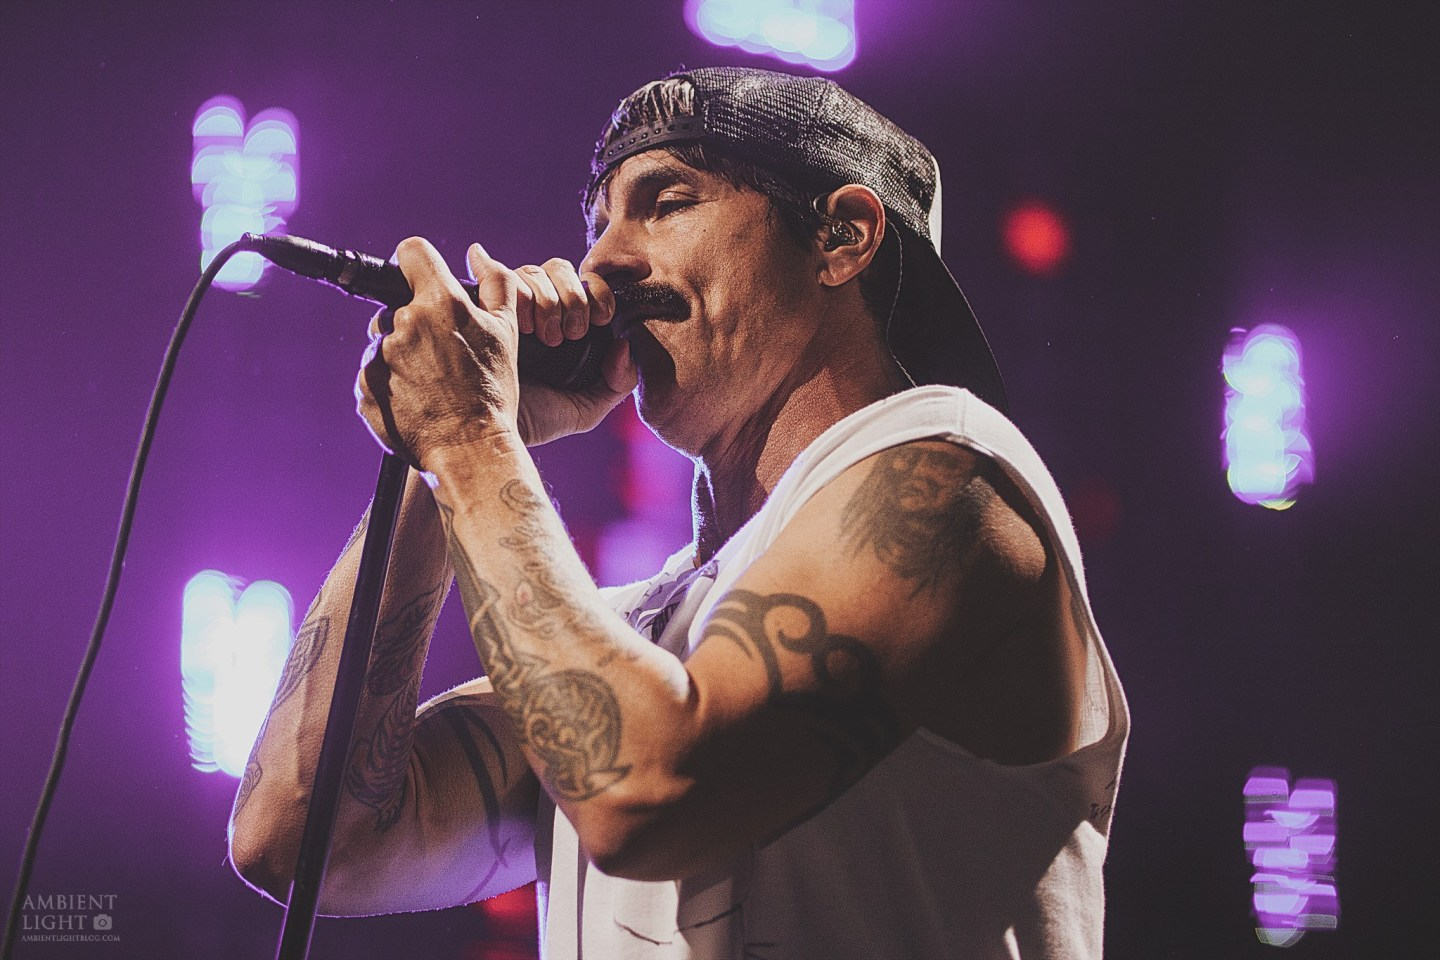 red hot chili peppers - photo #16